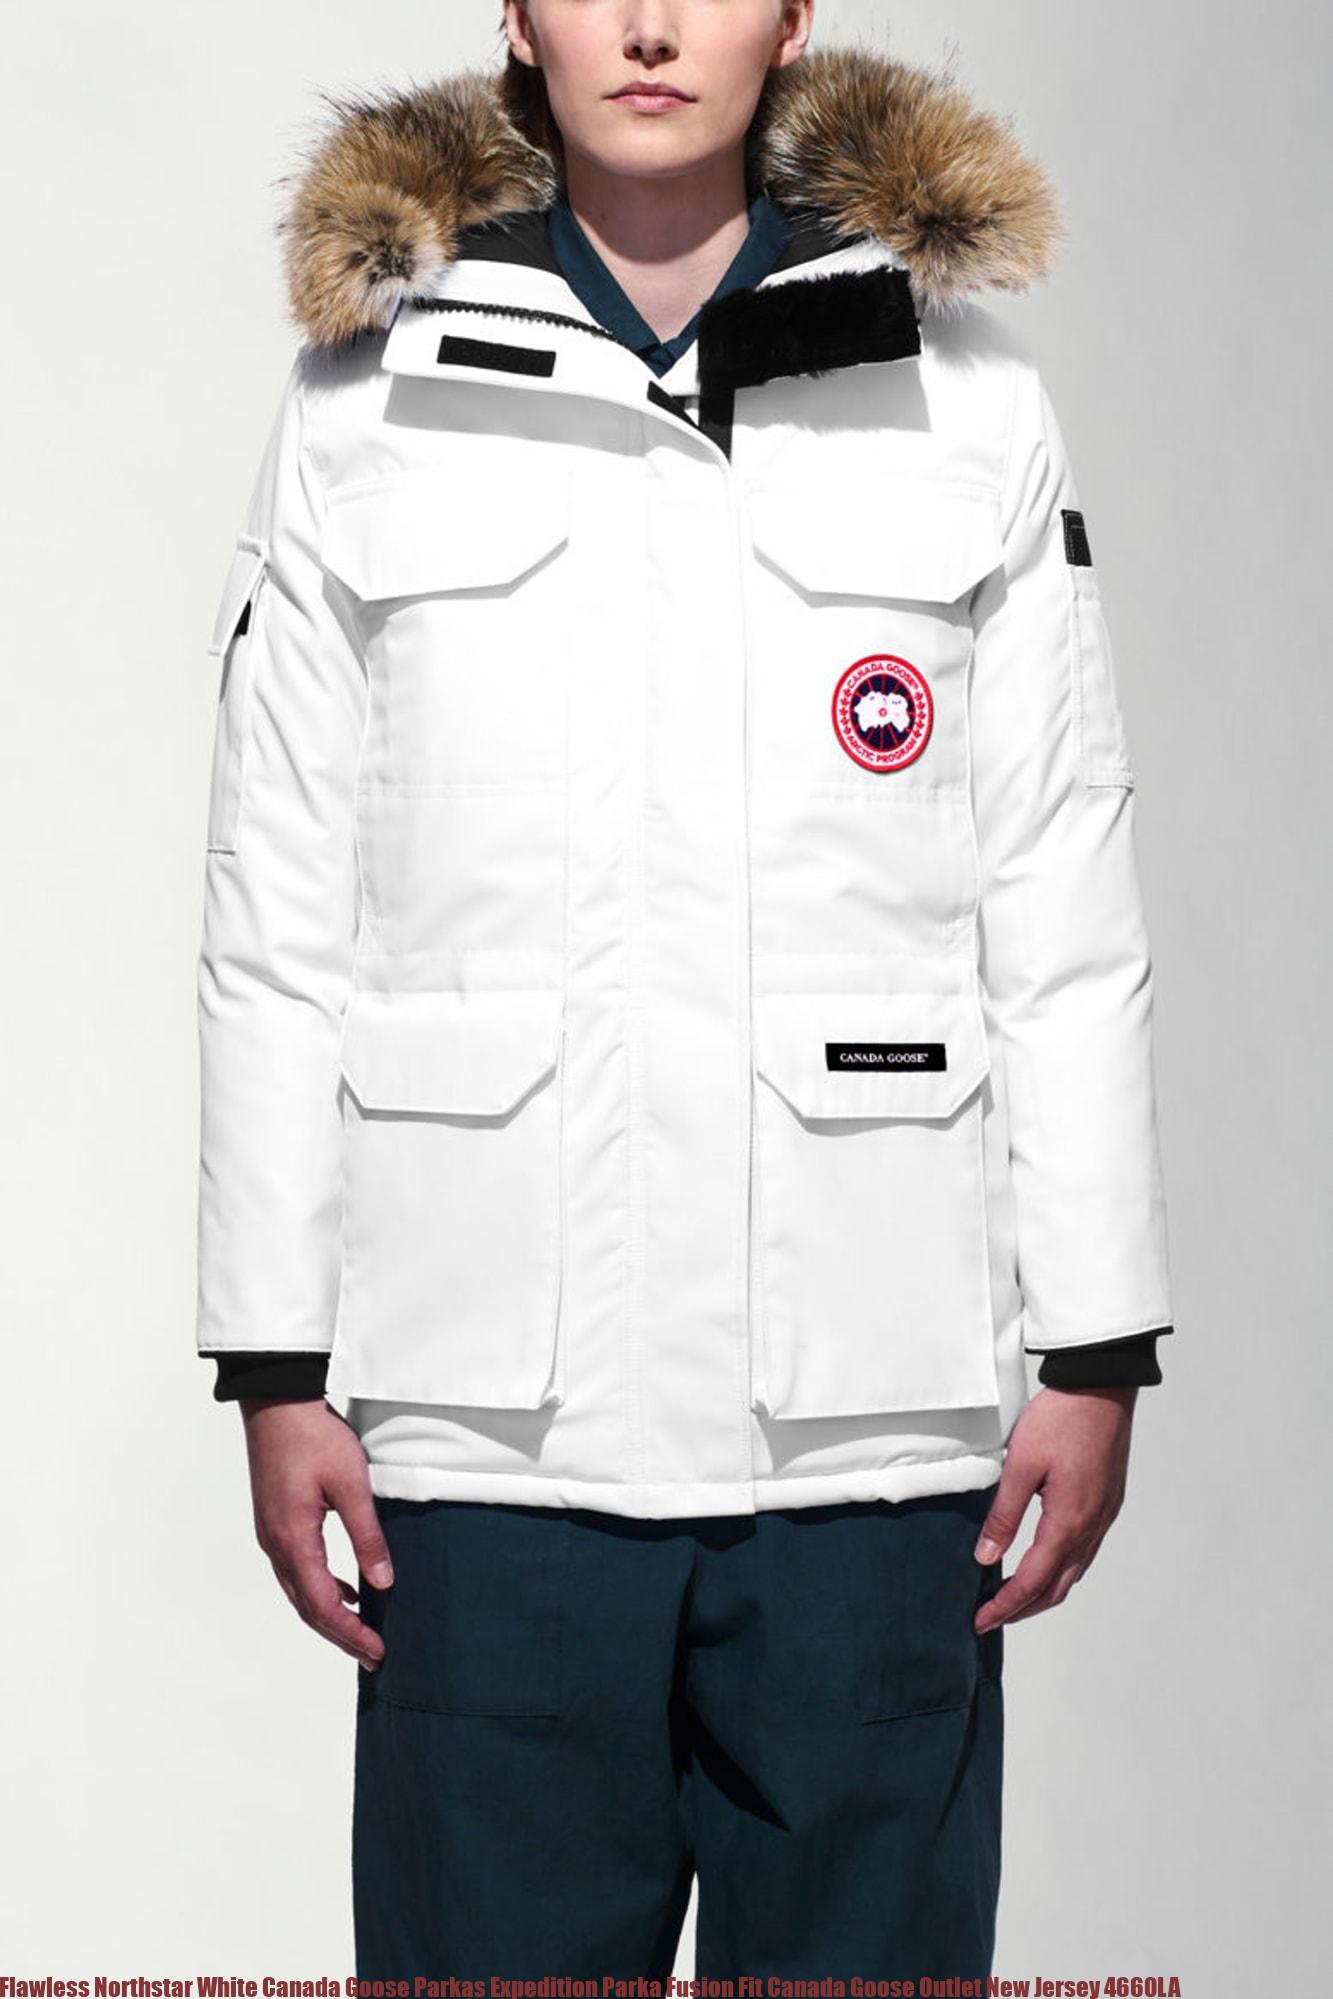 2310e48be42 Flawless Northstar White Canada Goose Parkas Expedition Parka Fusion Fit Canada  Goose Outlet New Jersey 4660LA – Cheap Canada Goose Sale Jacket | Canada ...